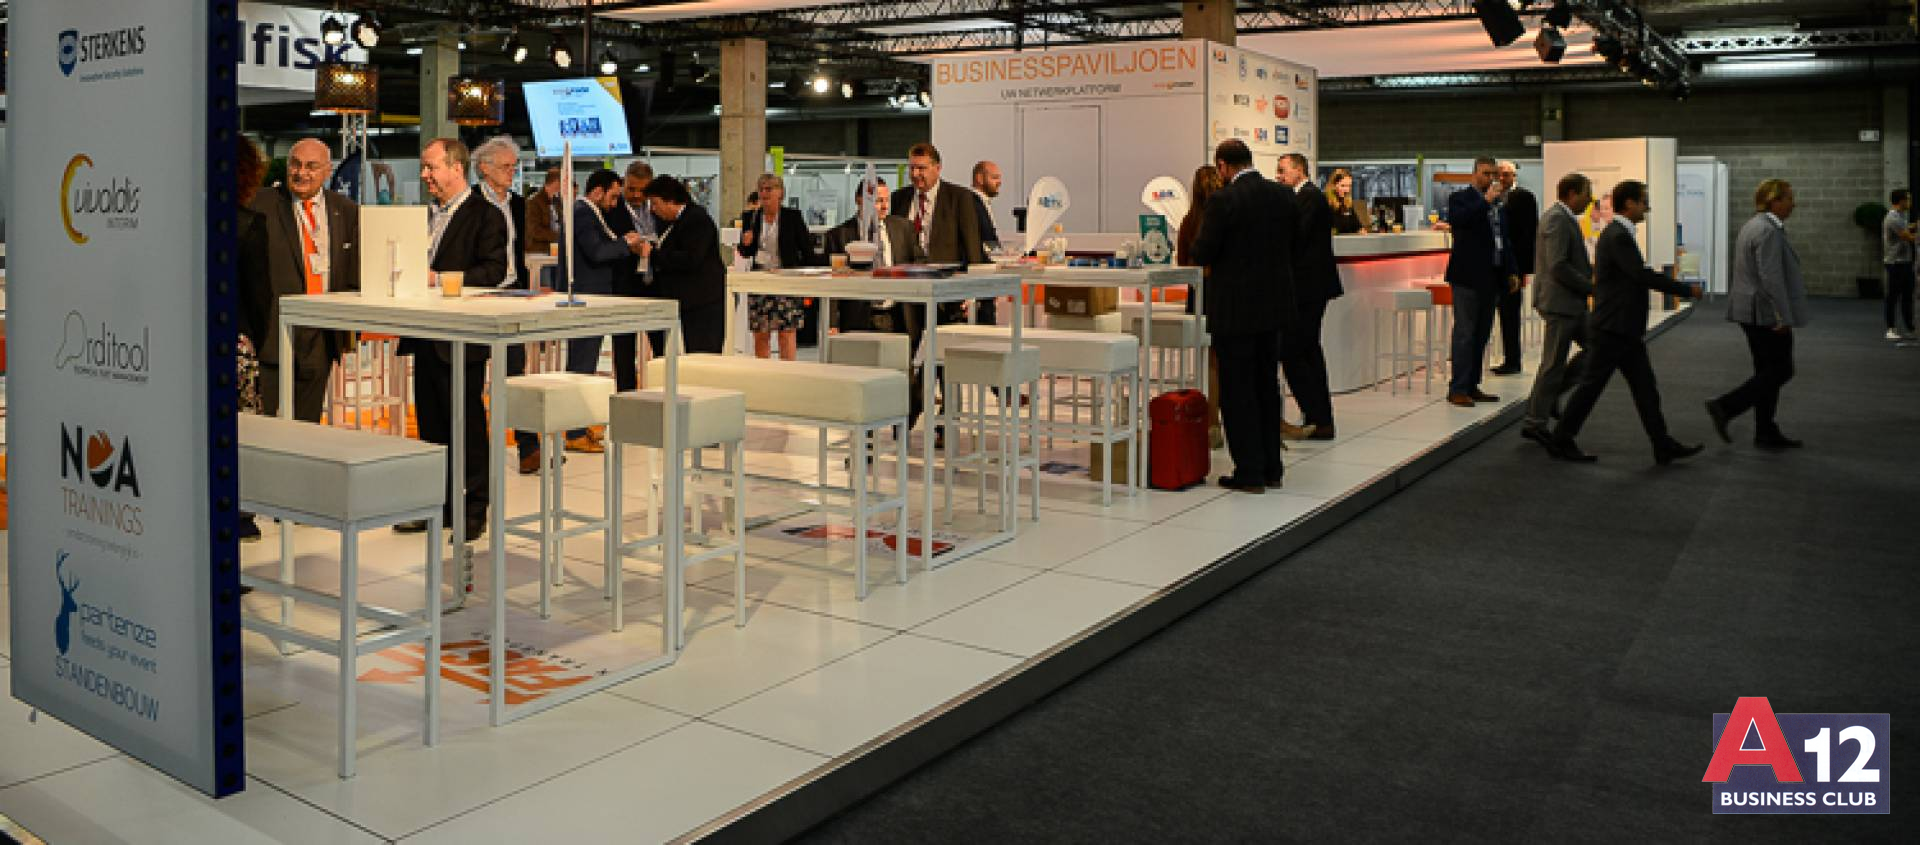 A12 Business Club - Ontbijtvergadering in Antwerp Expo